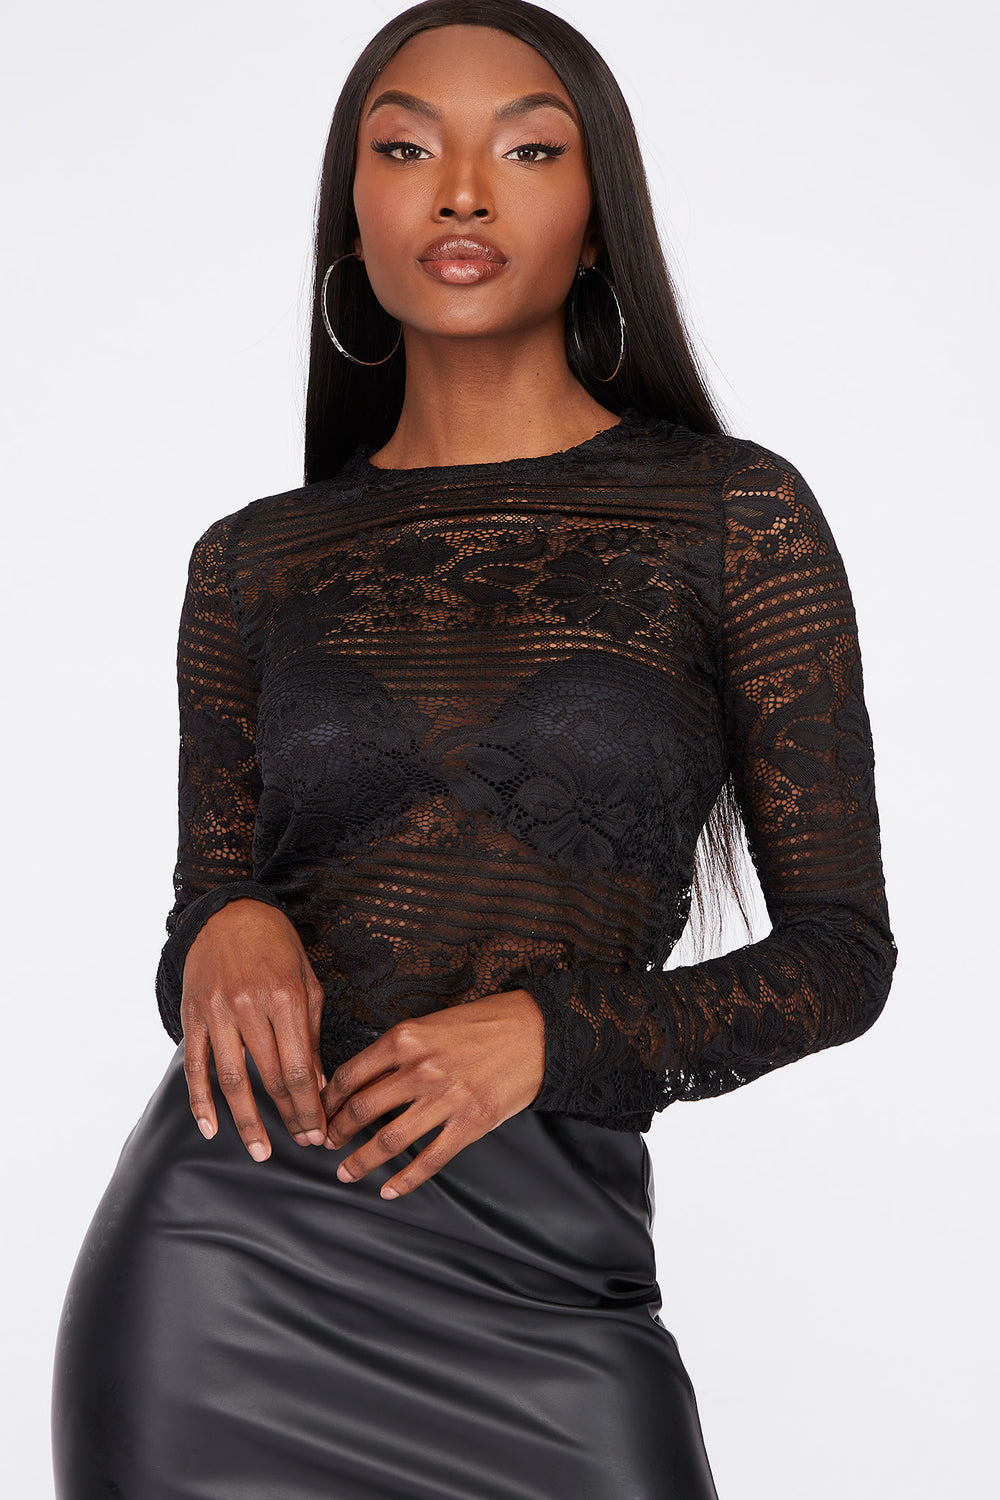 Striped Lace Cropped Long Sleeve Black